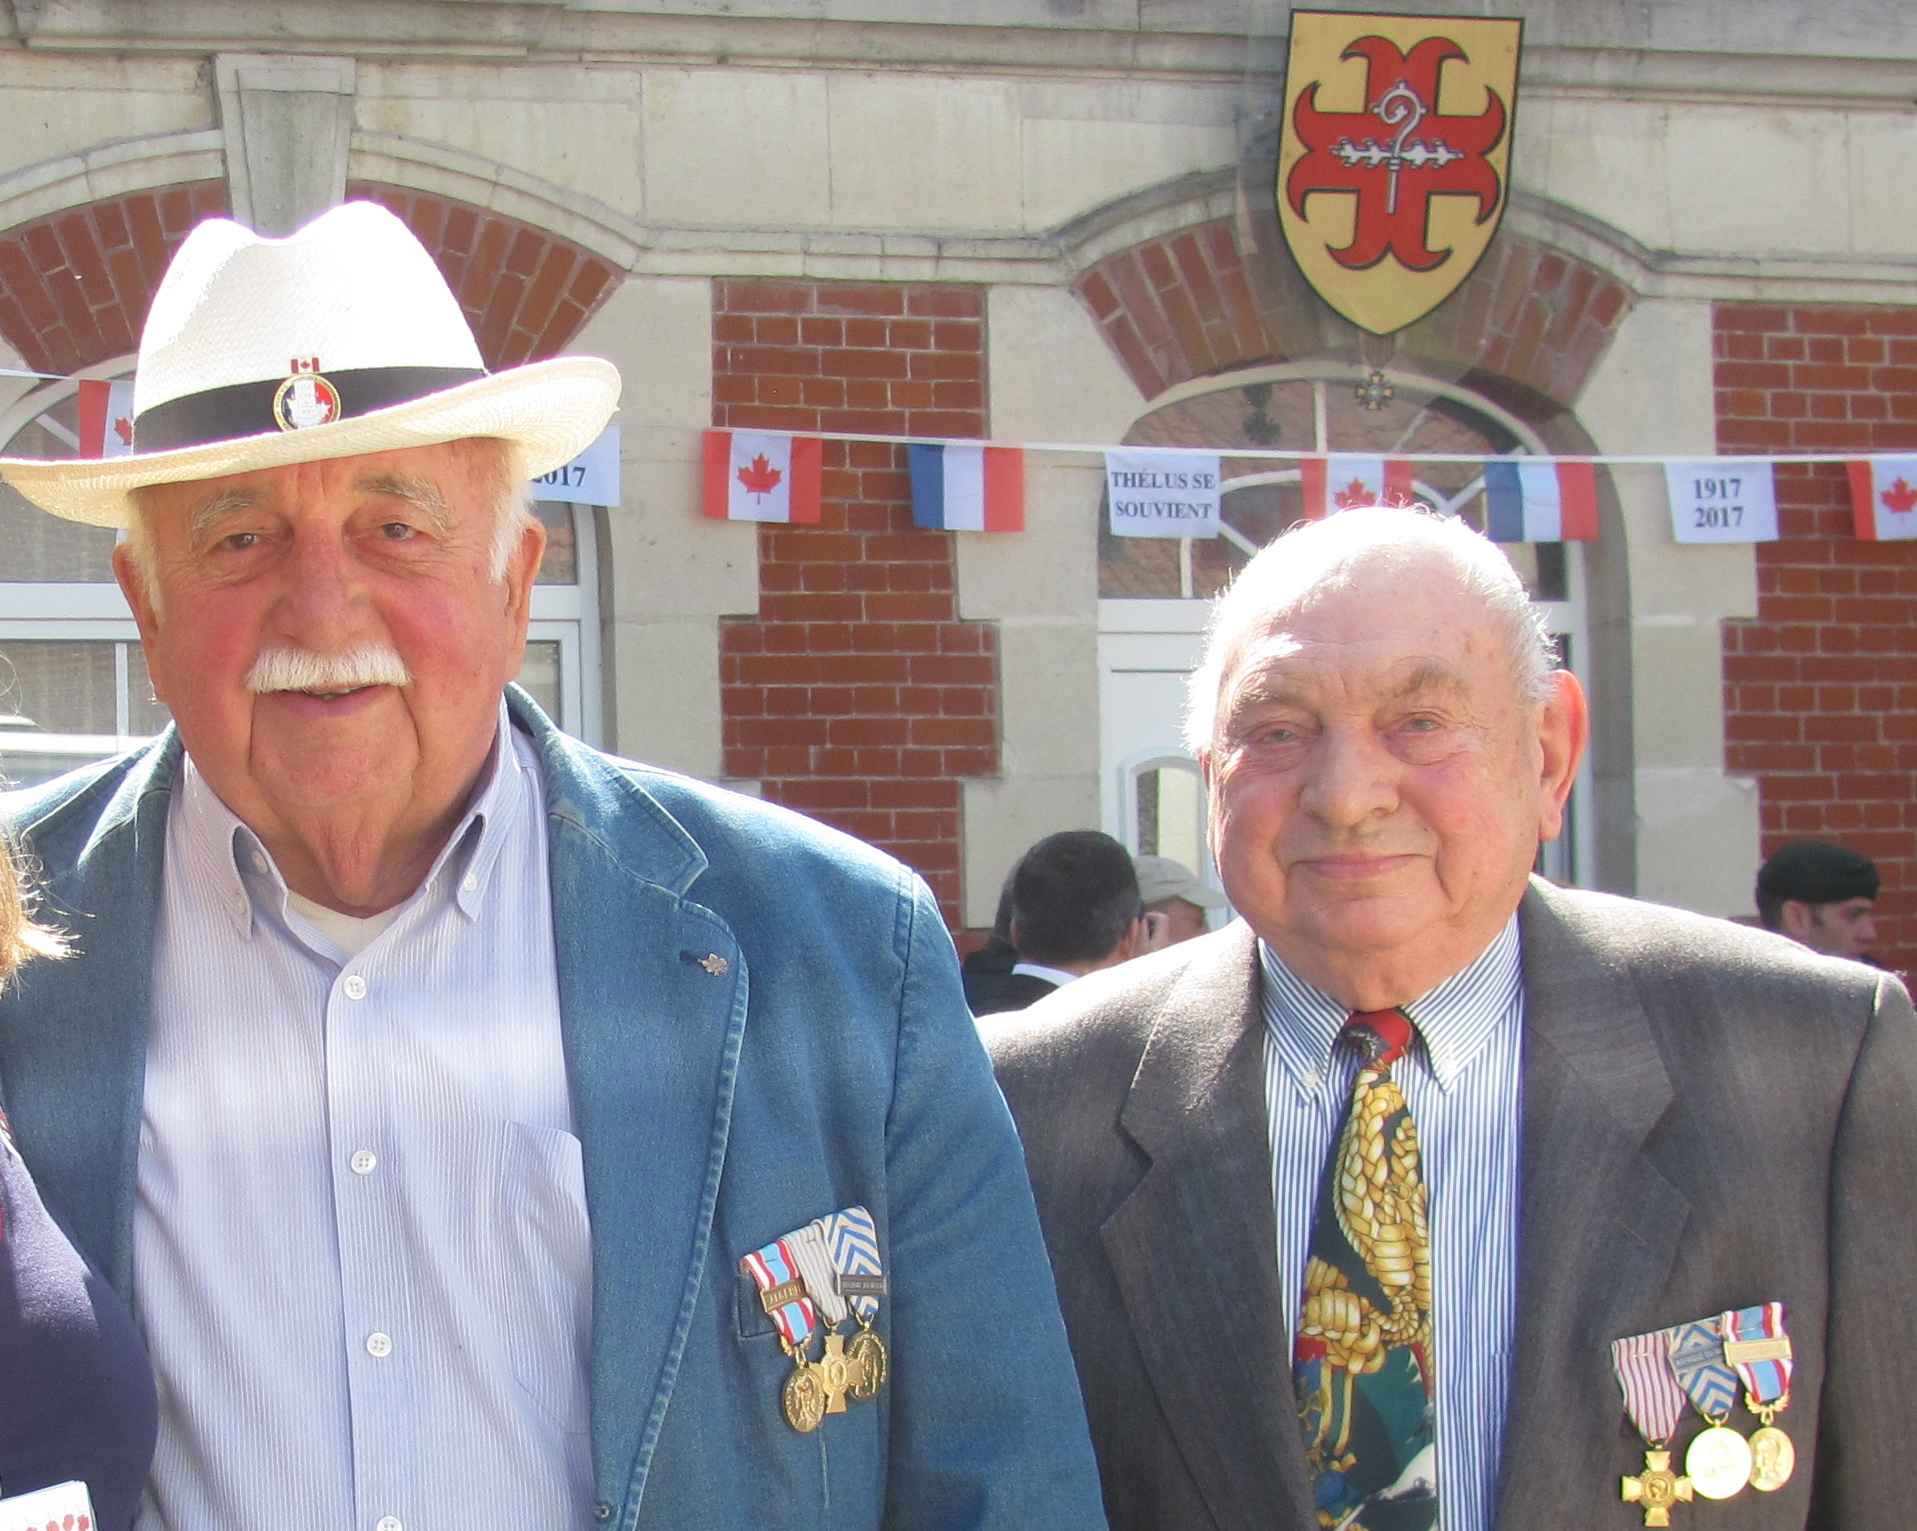 Thelusian French veterans of the Algerian war attended and mixed with Canadians guests. Thelus coat of arms can be seen in the background.